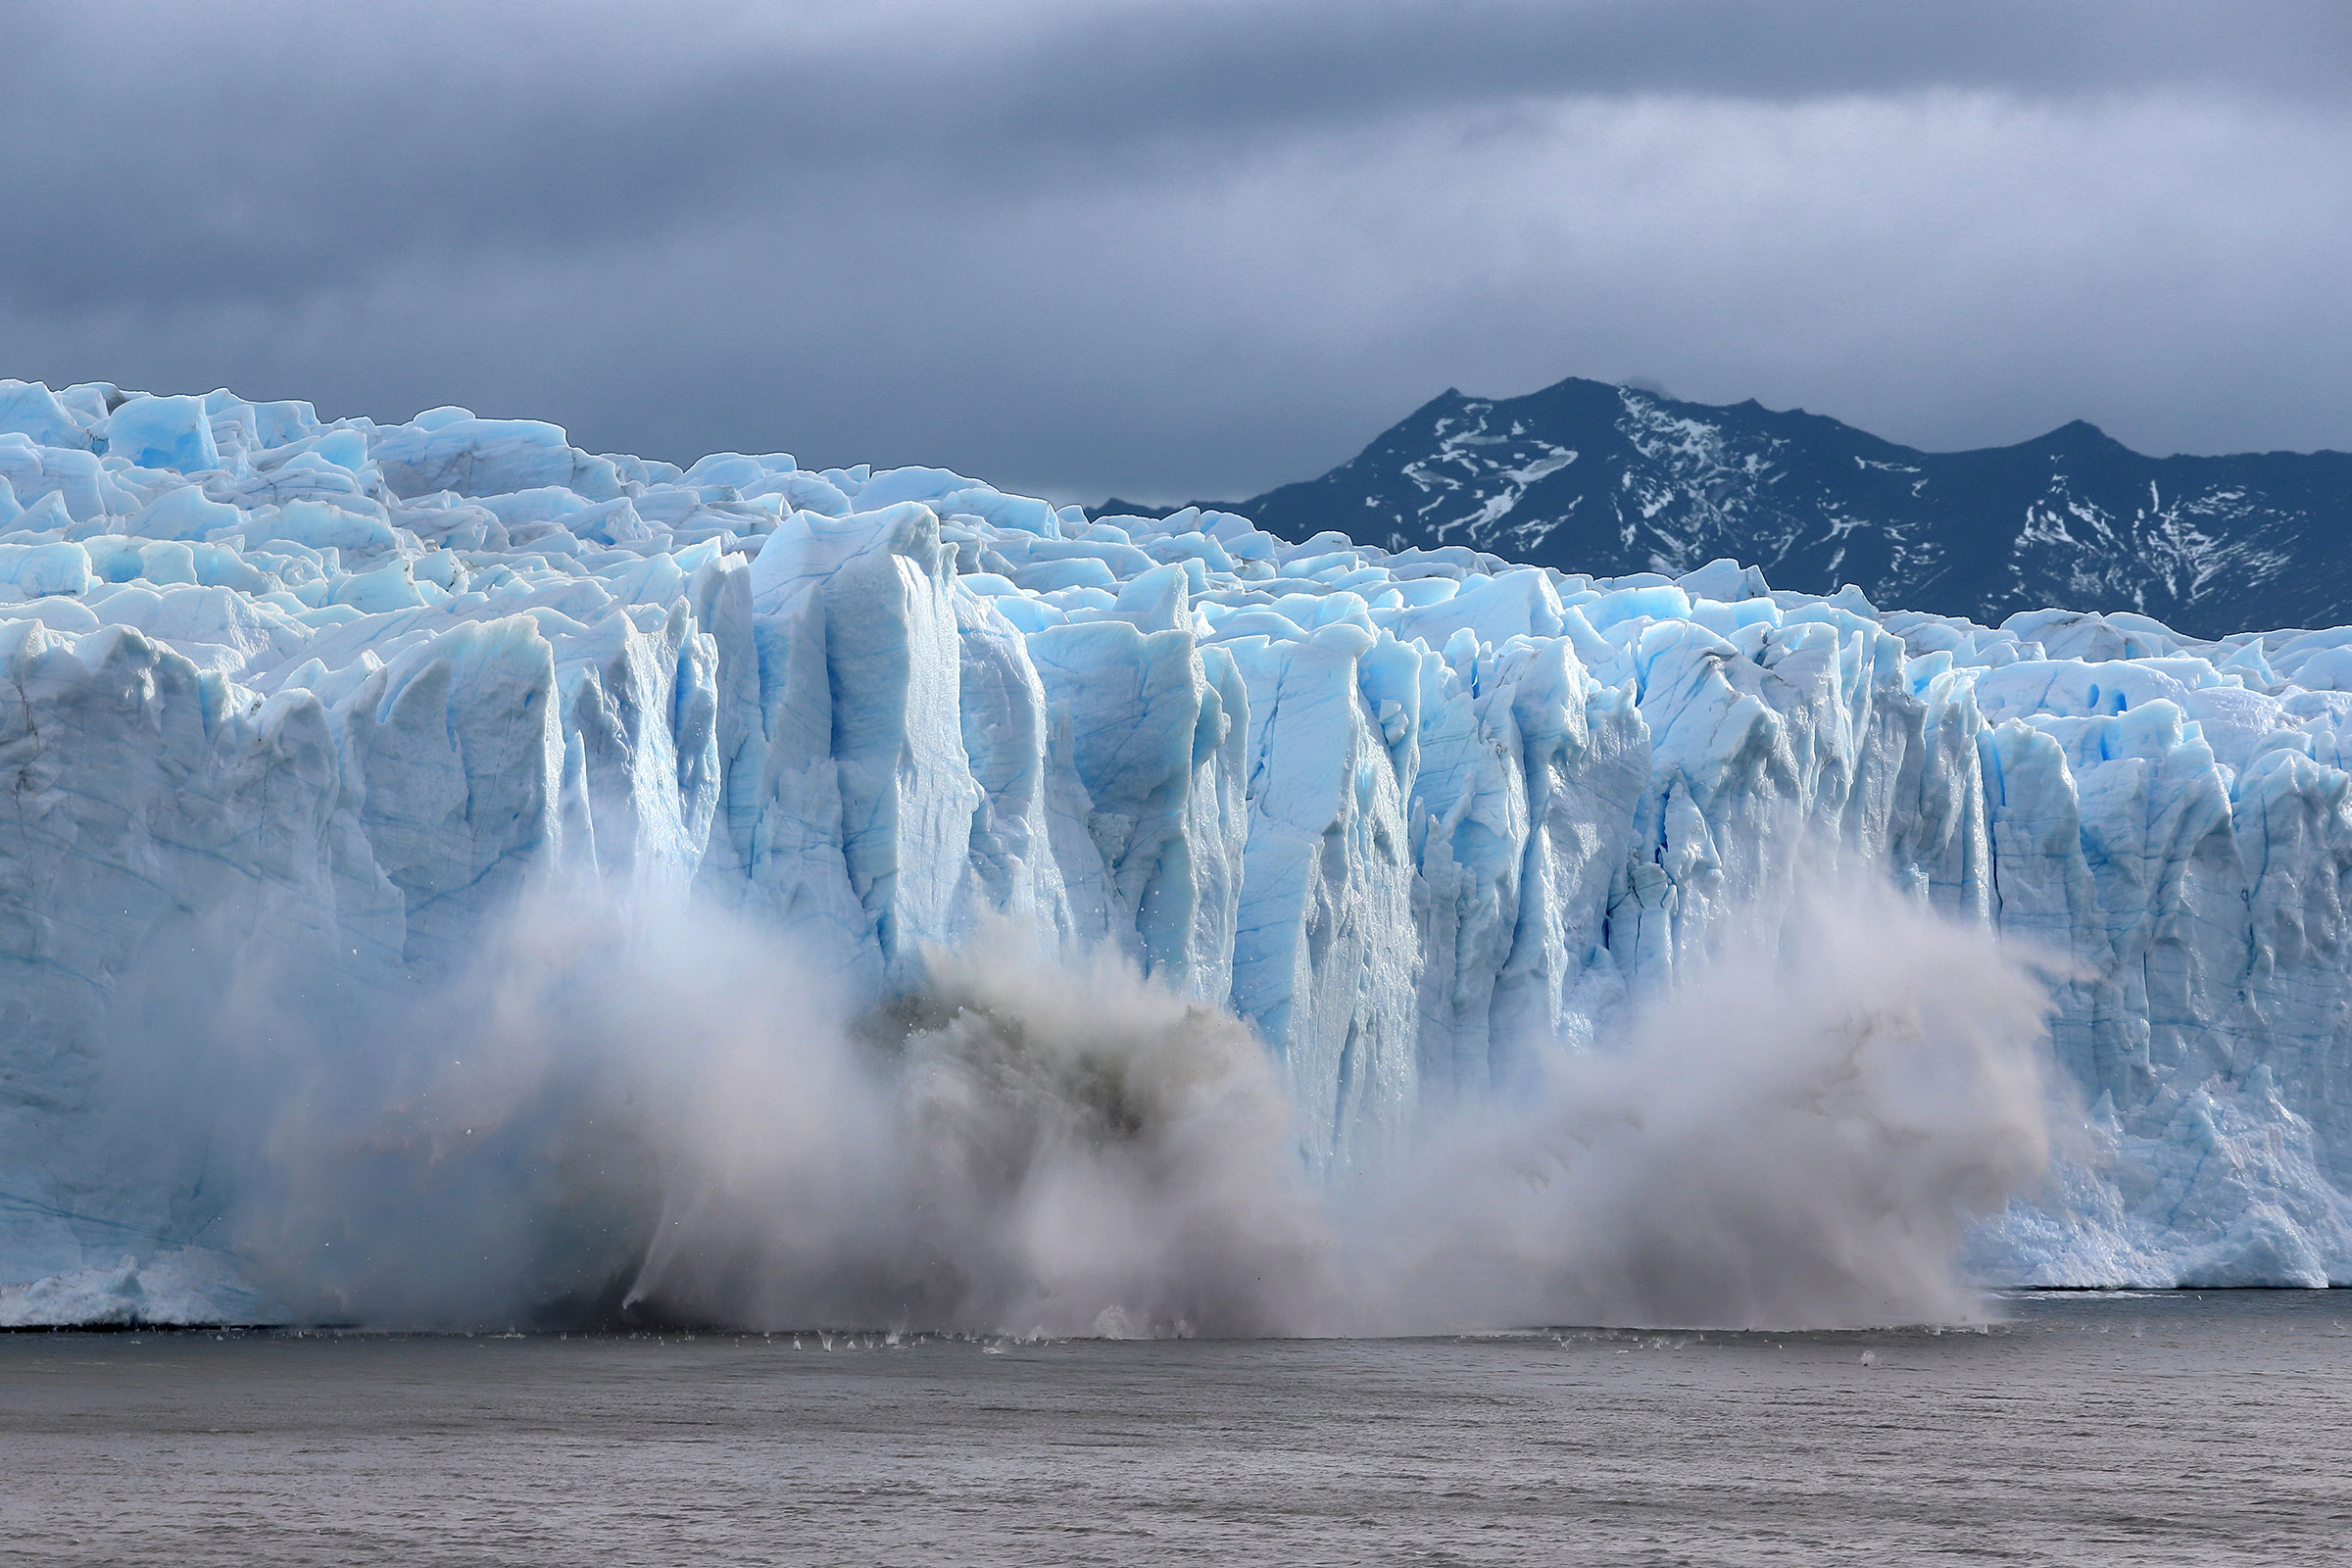 A piece of the Perito Moreno glacier, part of the Southern Patagonian Ice Field, breaks off and crashes into Lake Argentina in the Los Glaciares National Park in Santa Cruz province, Argentina on April 5, 2019. In 2019, the ice fields were the largest expanse of ice in the Southern Hemisphere outside of Antarctica, but according to NASA reporting they were melting away at some of the highest rates on the planet as a result of global warming.